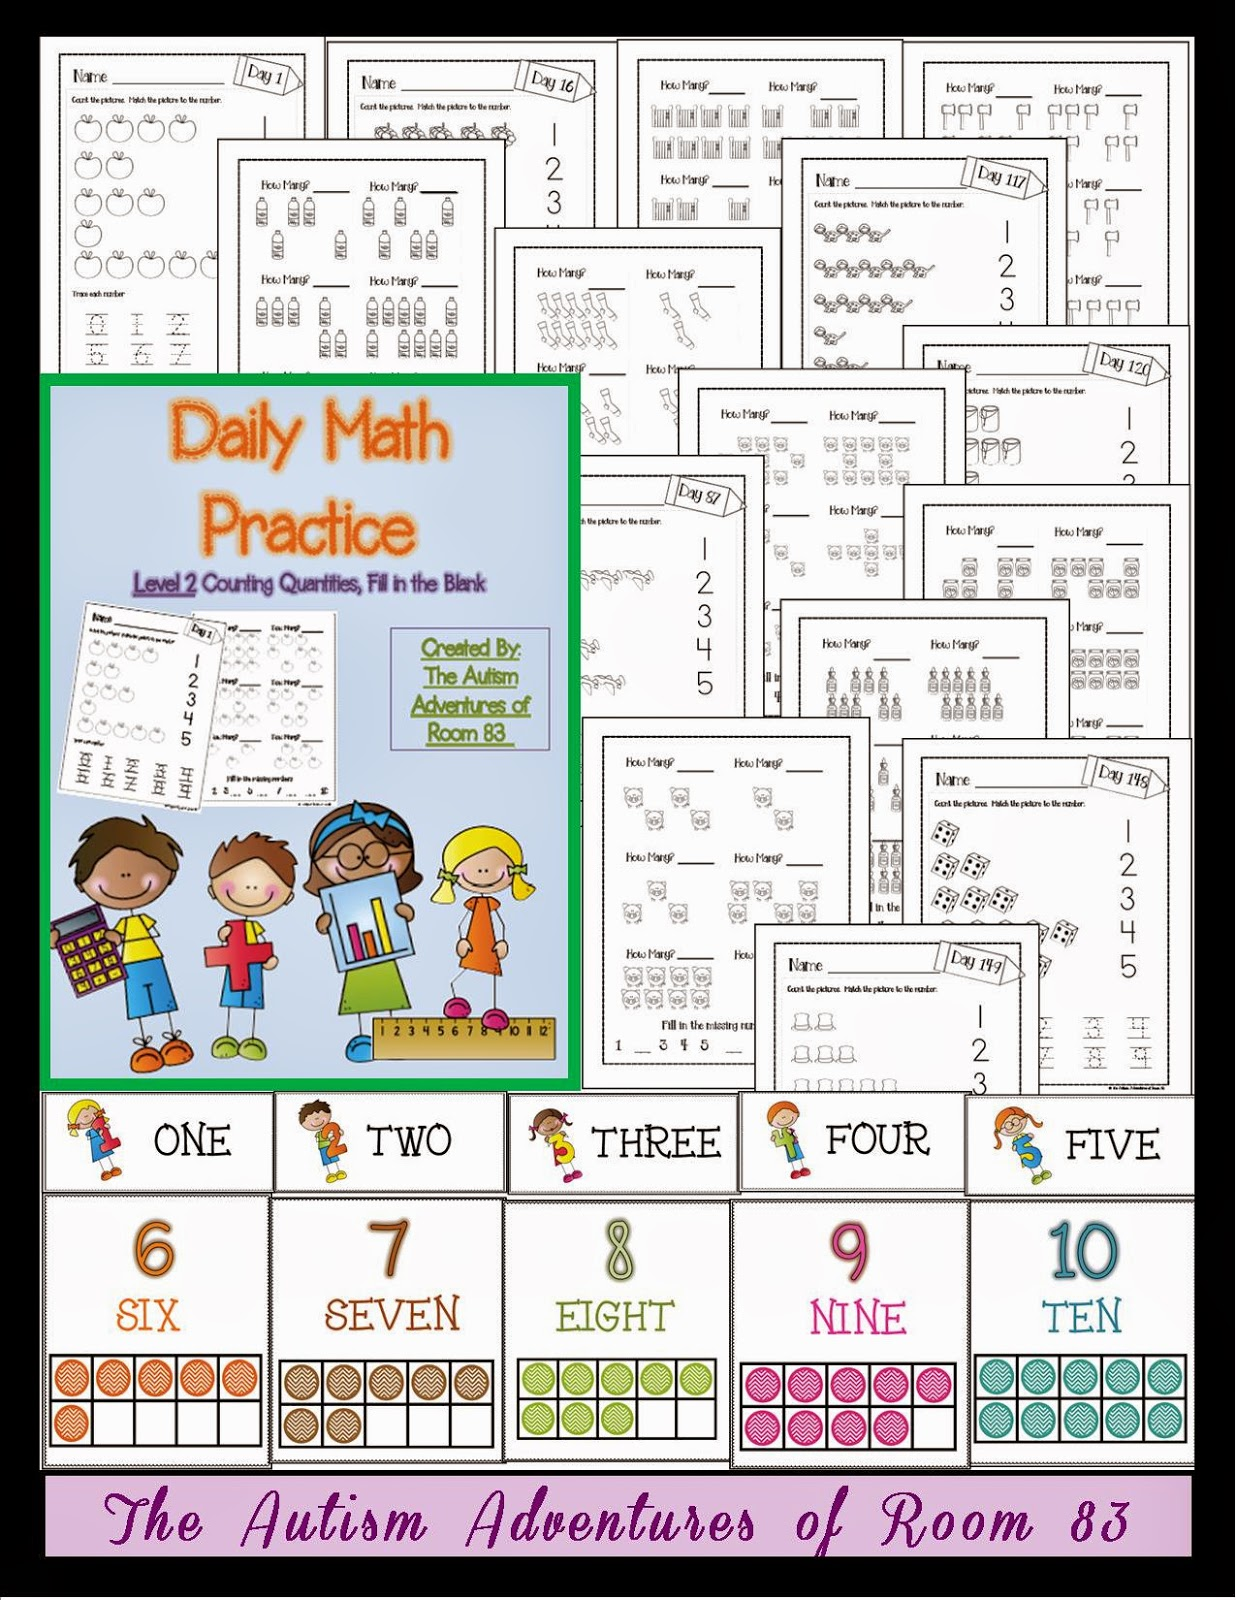 Daily Math Practice Level 2 Counting Quantities